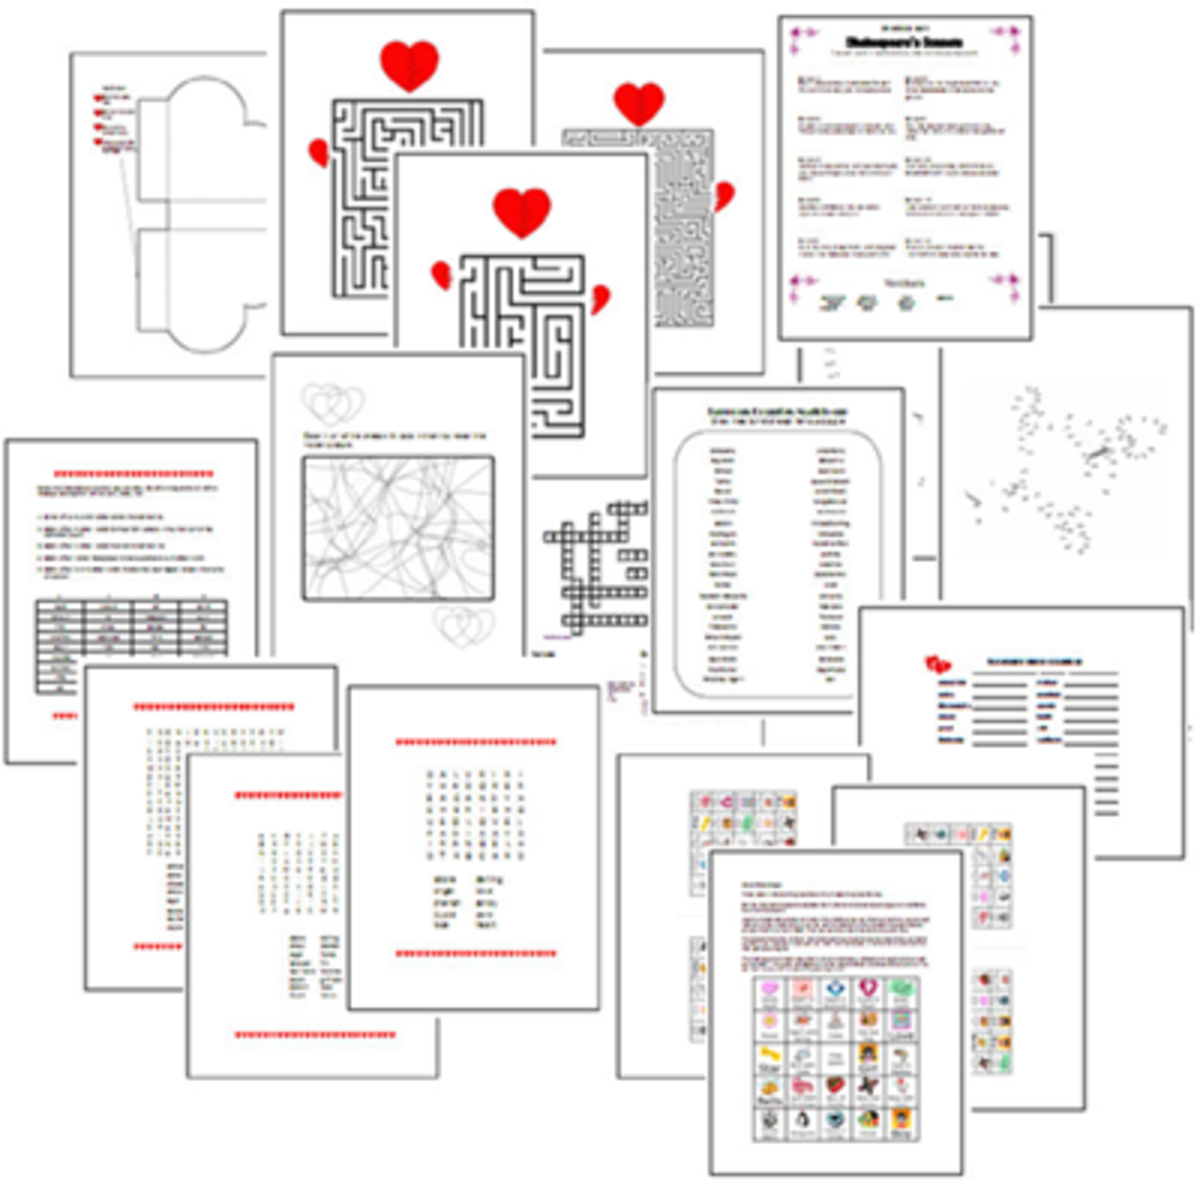 All Crafts isn't just crafts, it's got some free printable games that are perfect for Valentine's Day!  Just click on the picture to visit this site and get these free games.